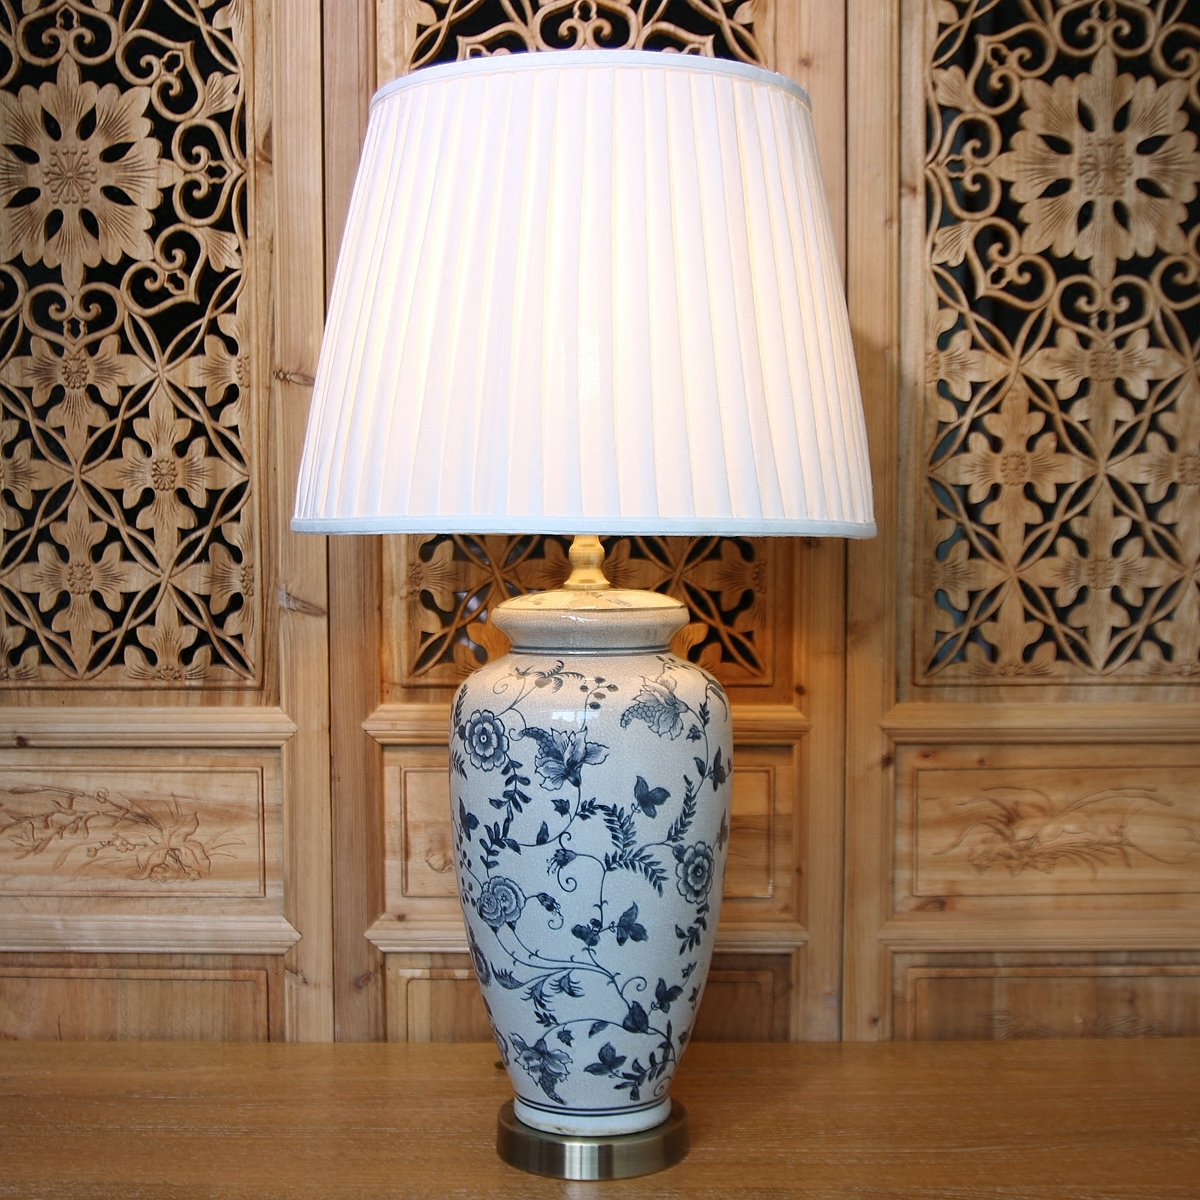 Antique Ice Crack Chinese Blue And White Porcelain Led E27 Table Lamp For Study Living Room Bedroom Ceramic Lights 1833 vintage style porcelain ceramic desk table lamps for bedside chinese blue and white porcelain chinese table lamp